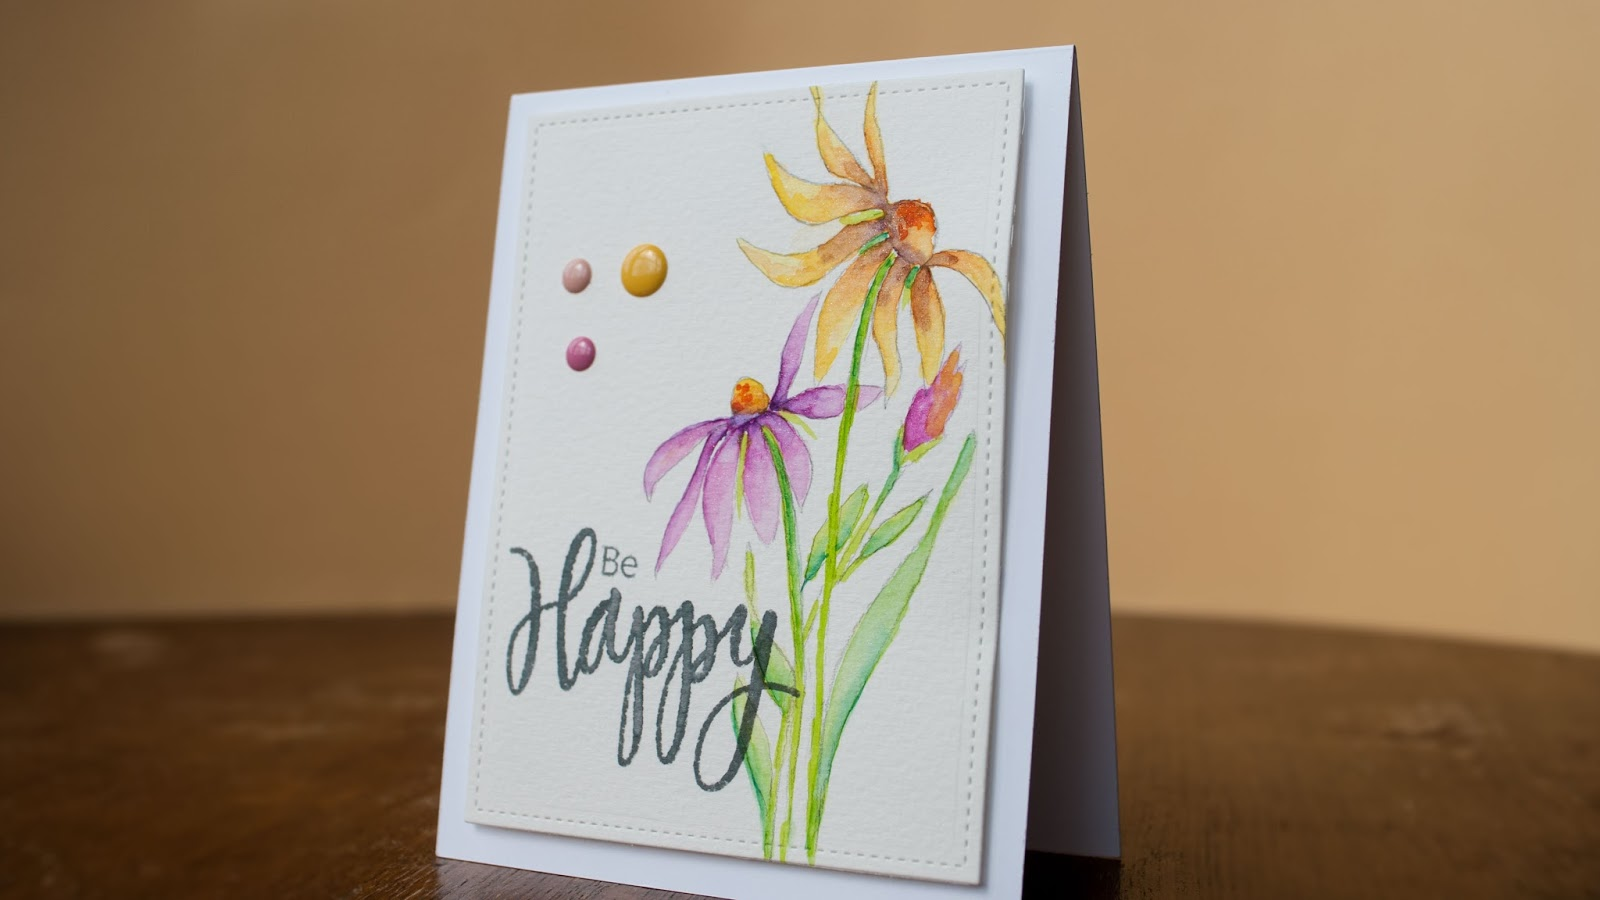 watercolor card be happy, cone flowers hand drawn finished project side view